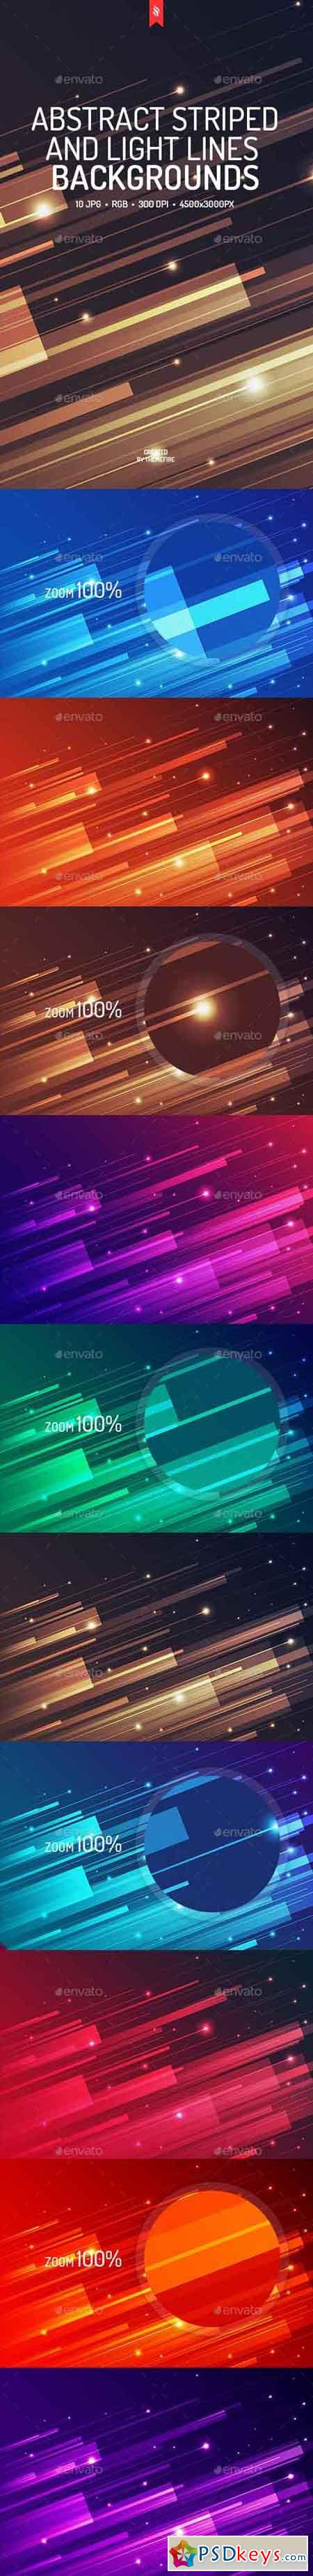 Abstract Striped and Light Lines Backgrounds 19226560